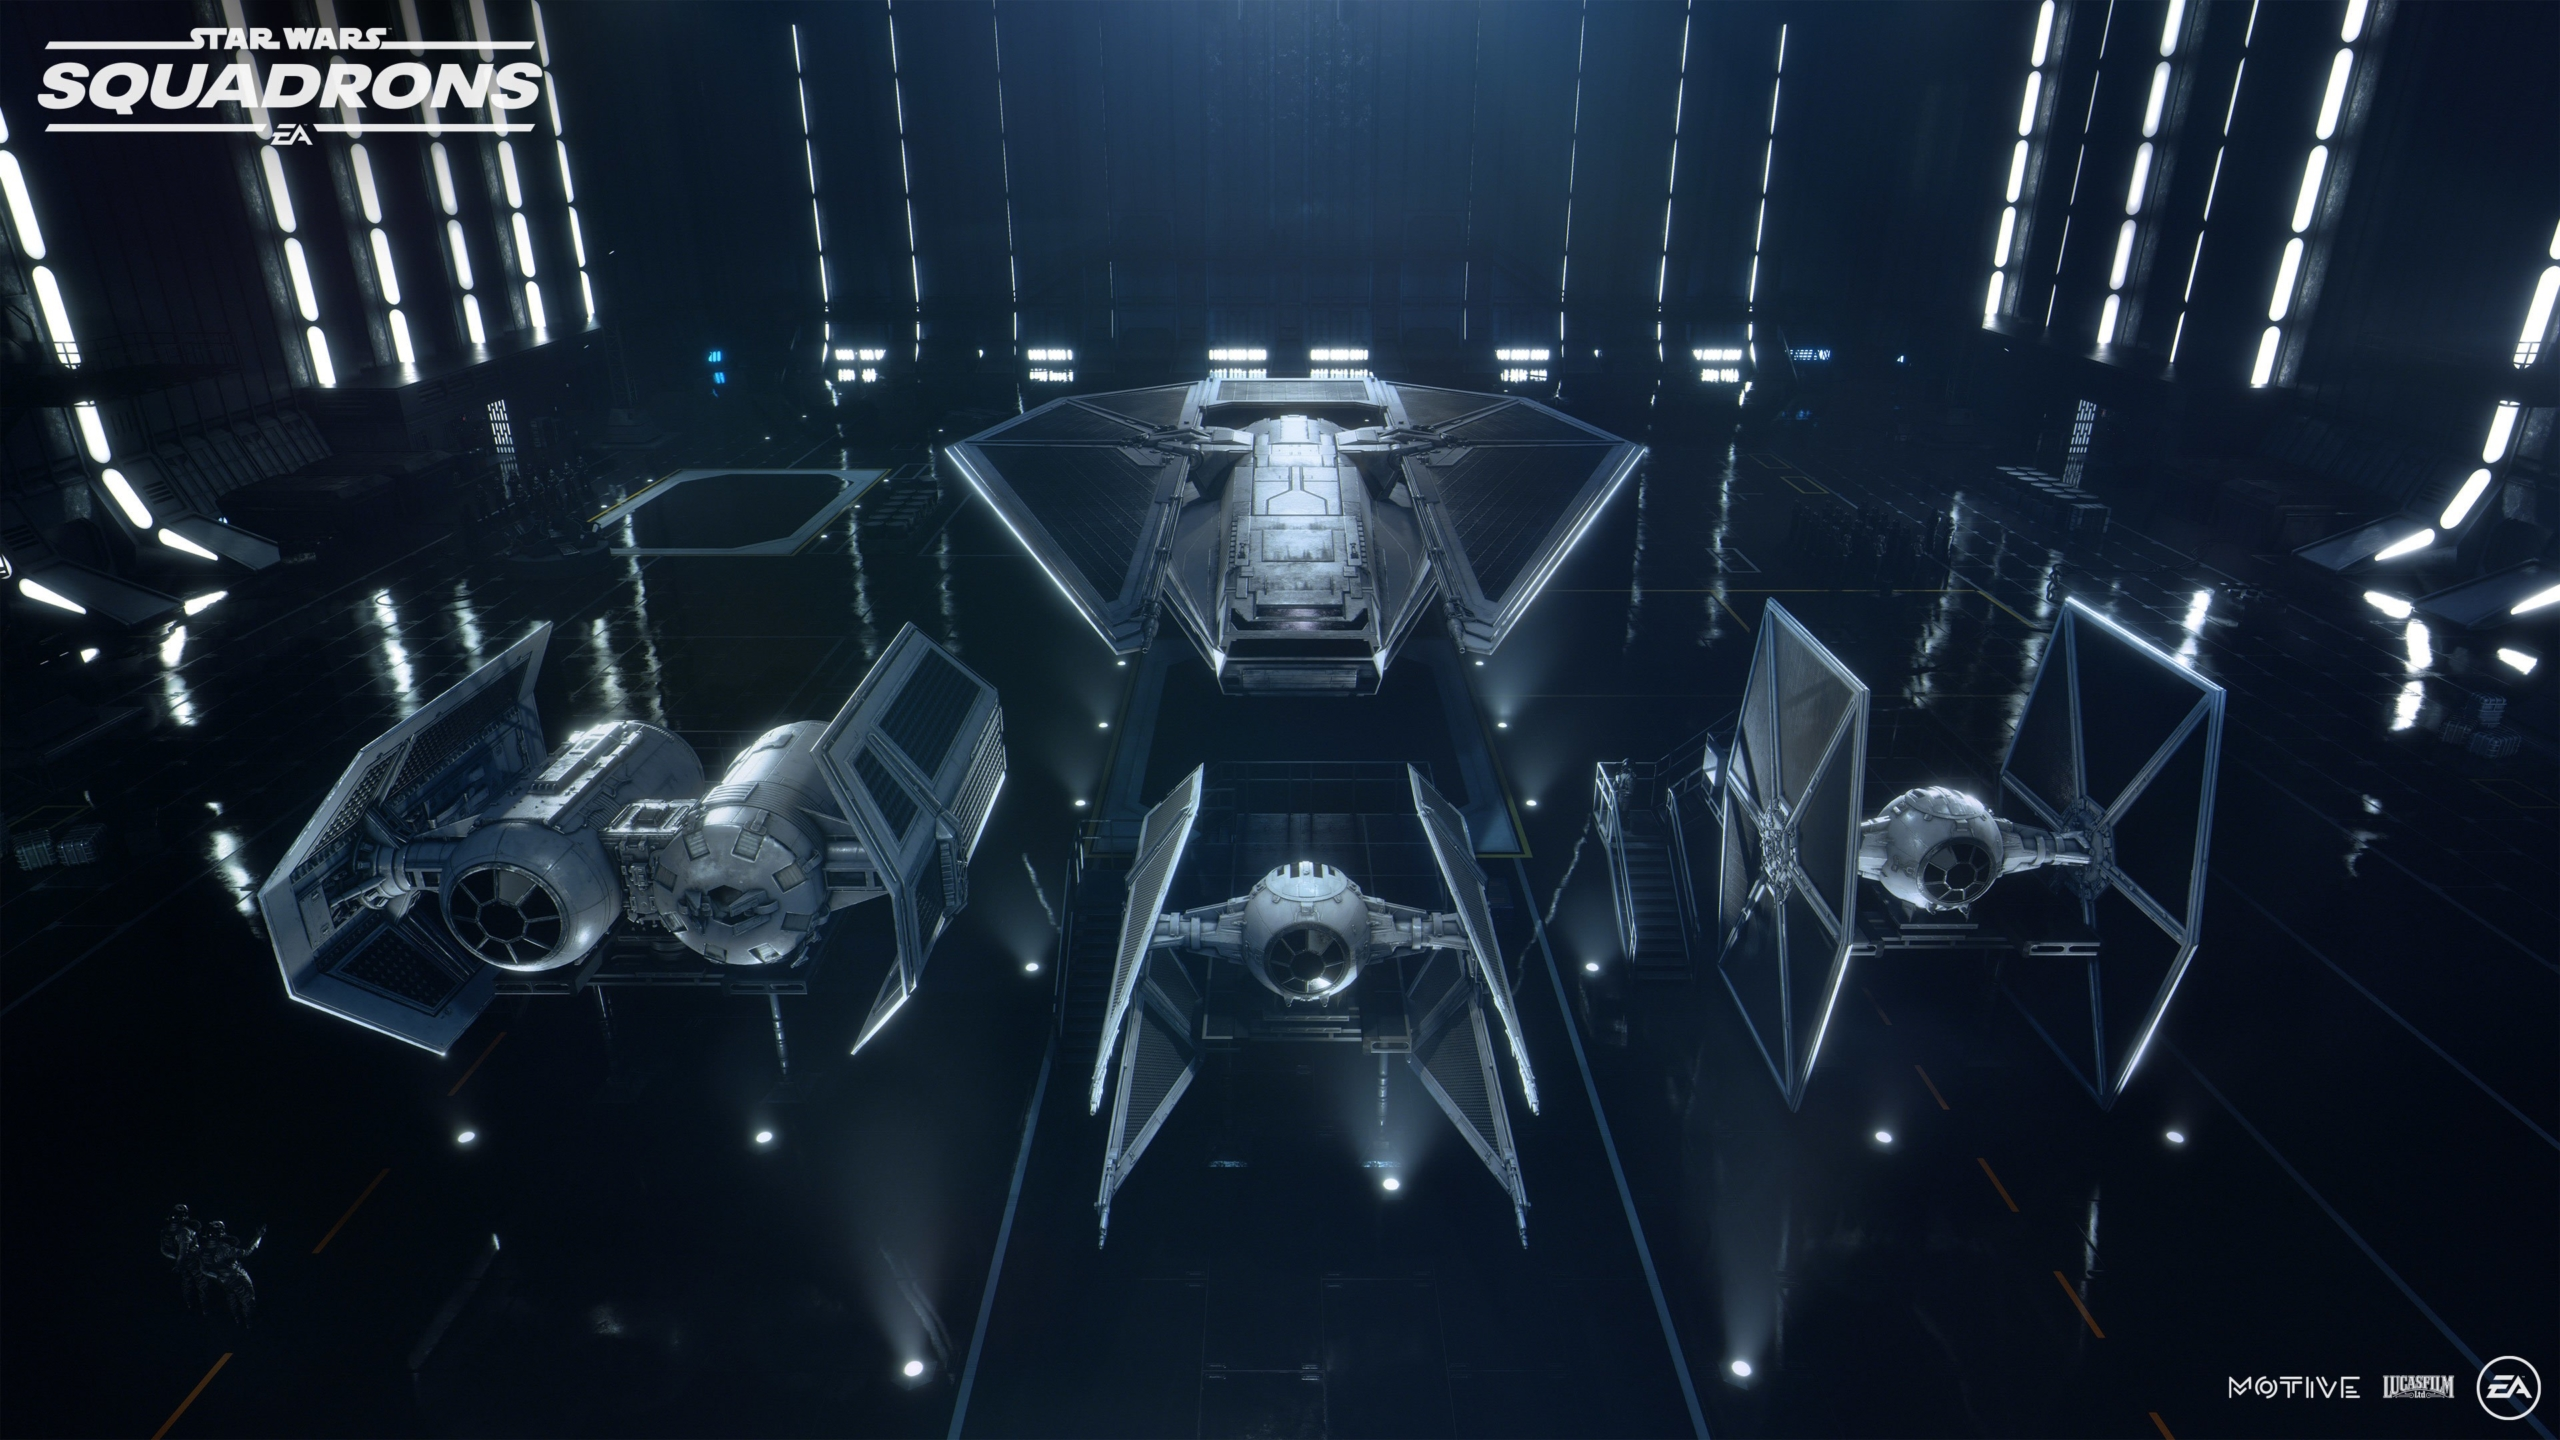 Star Wars Squadrons Galactic Empire Hanger Wallpaper